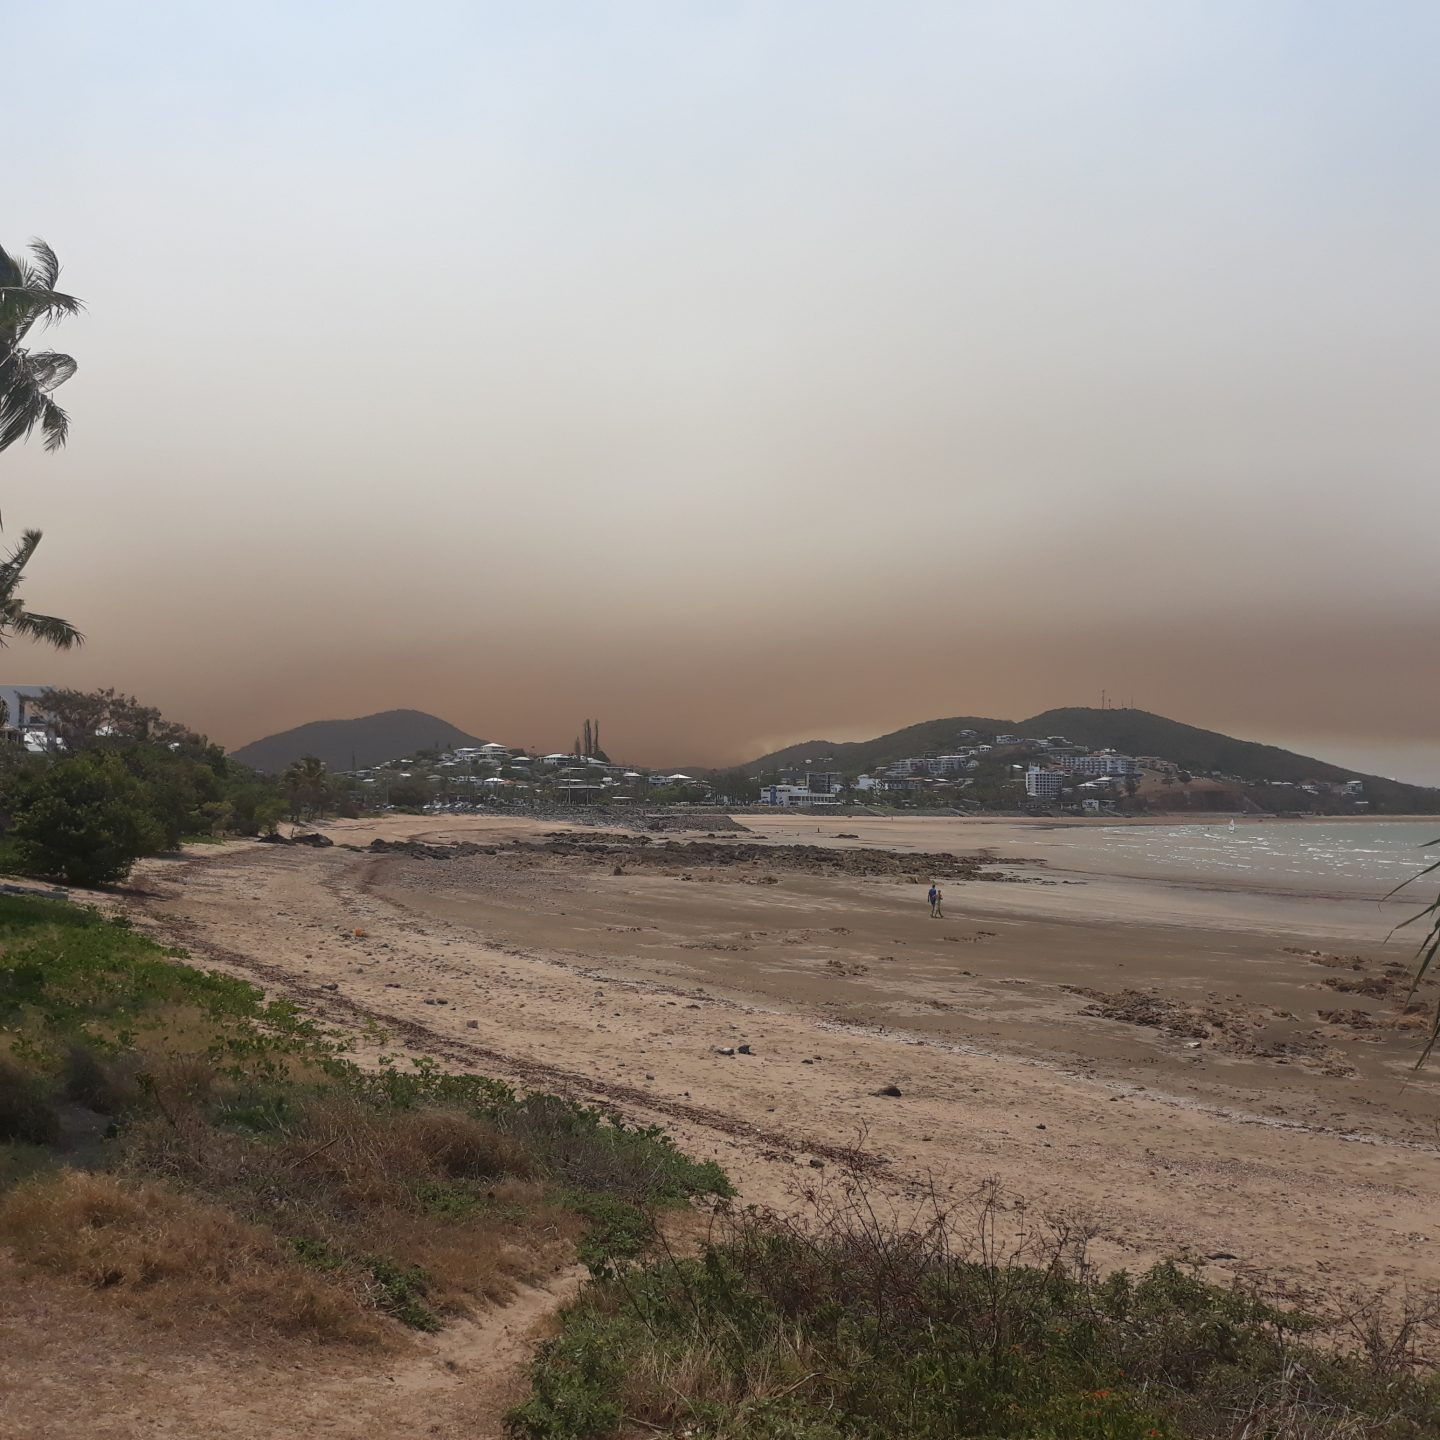 A beach with a large smoke plume in the distance.